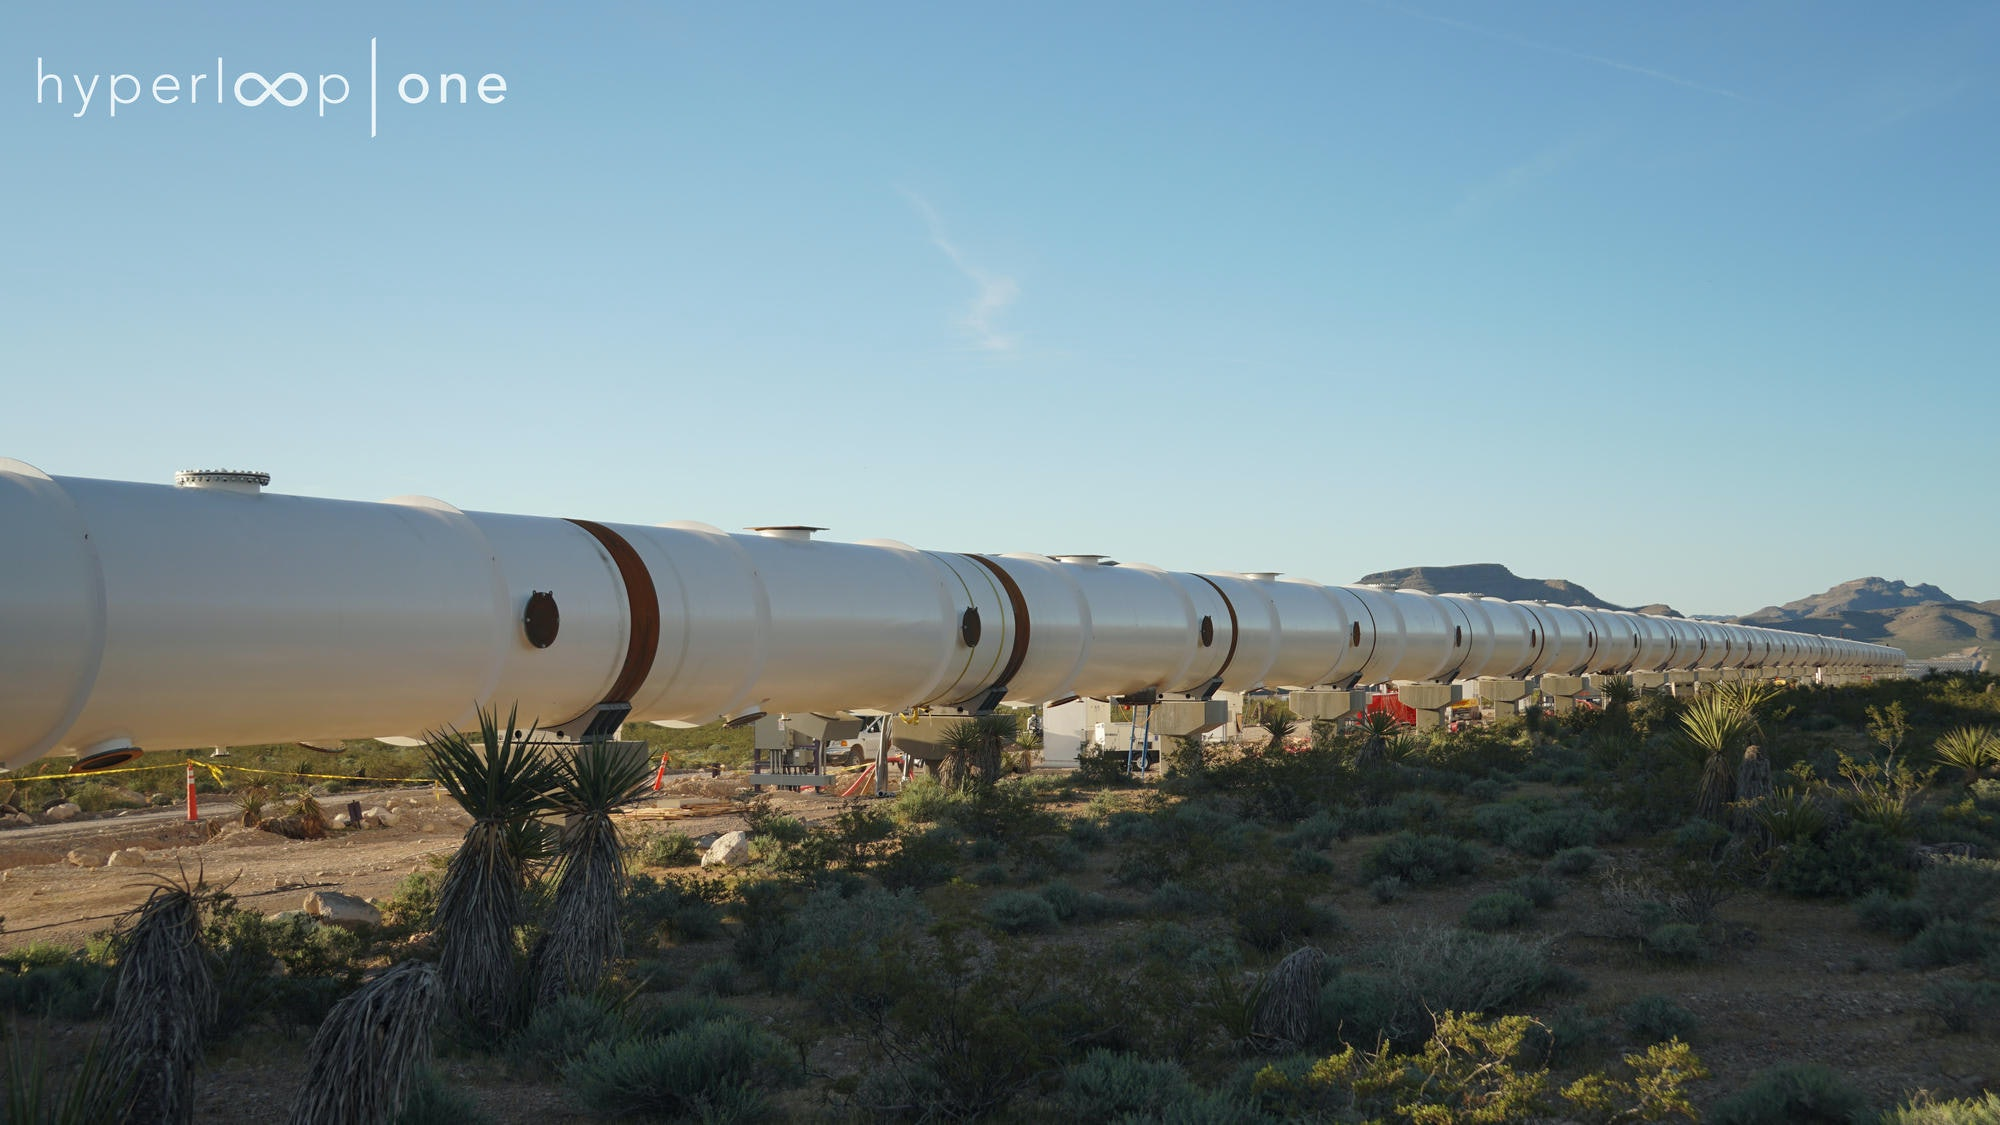 Hyperloop One Testing Delays